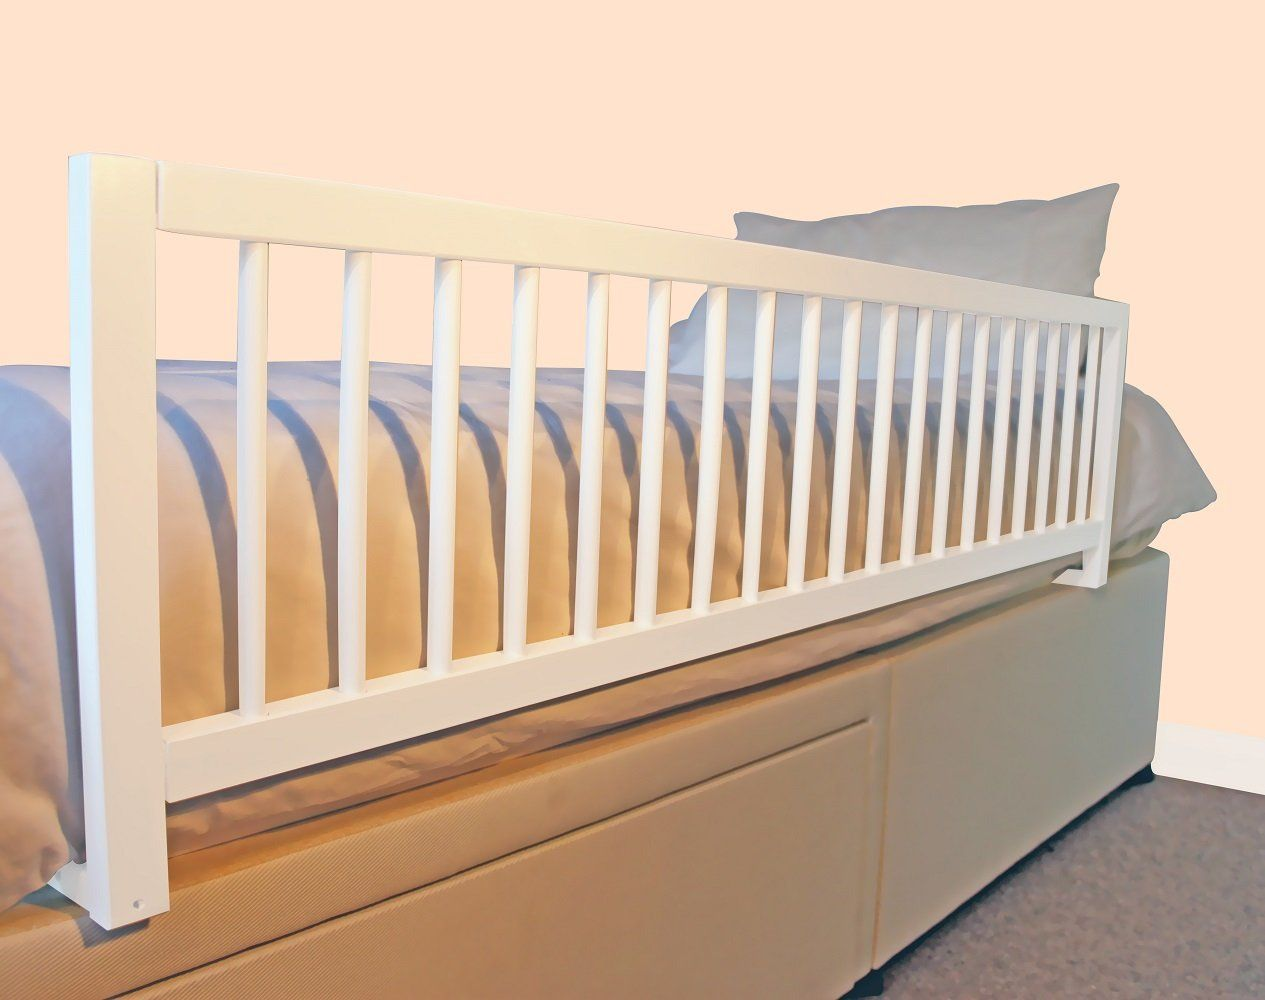 Bunk Bed Rail Guard Bed Rails Bed Rails For Toddlers Bed